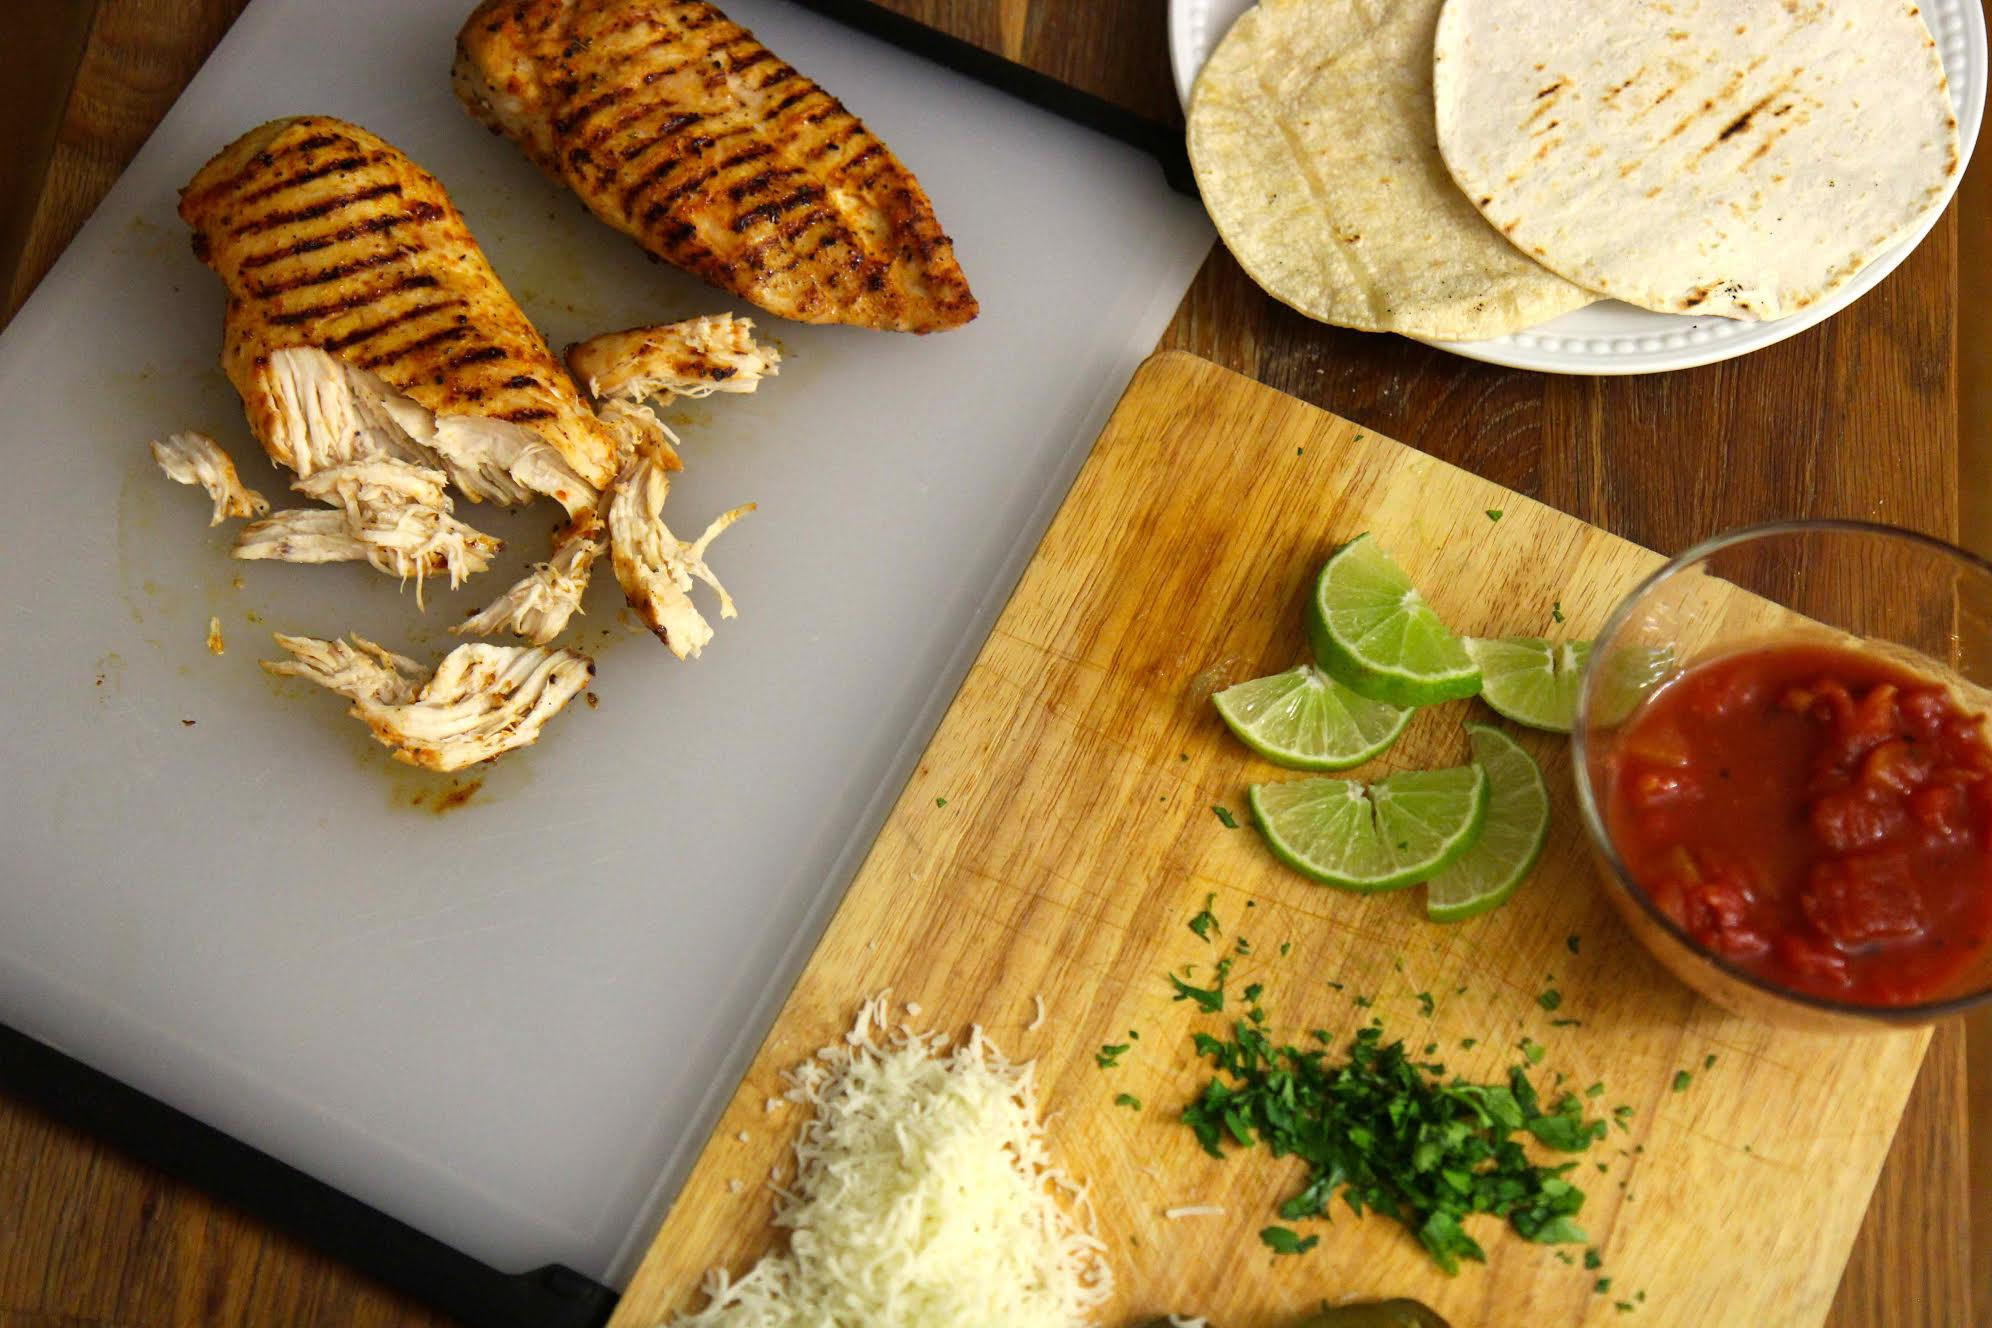 This easy grilled chicken taco recipe is a great way to shake up taco night